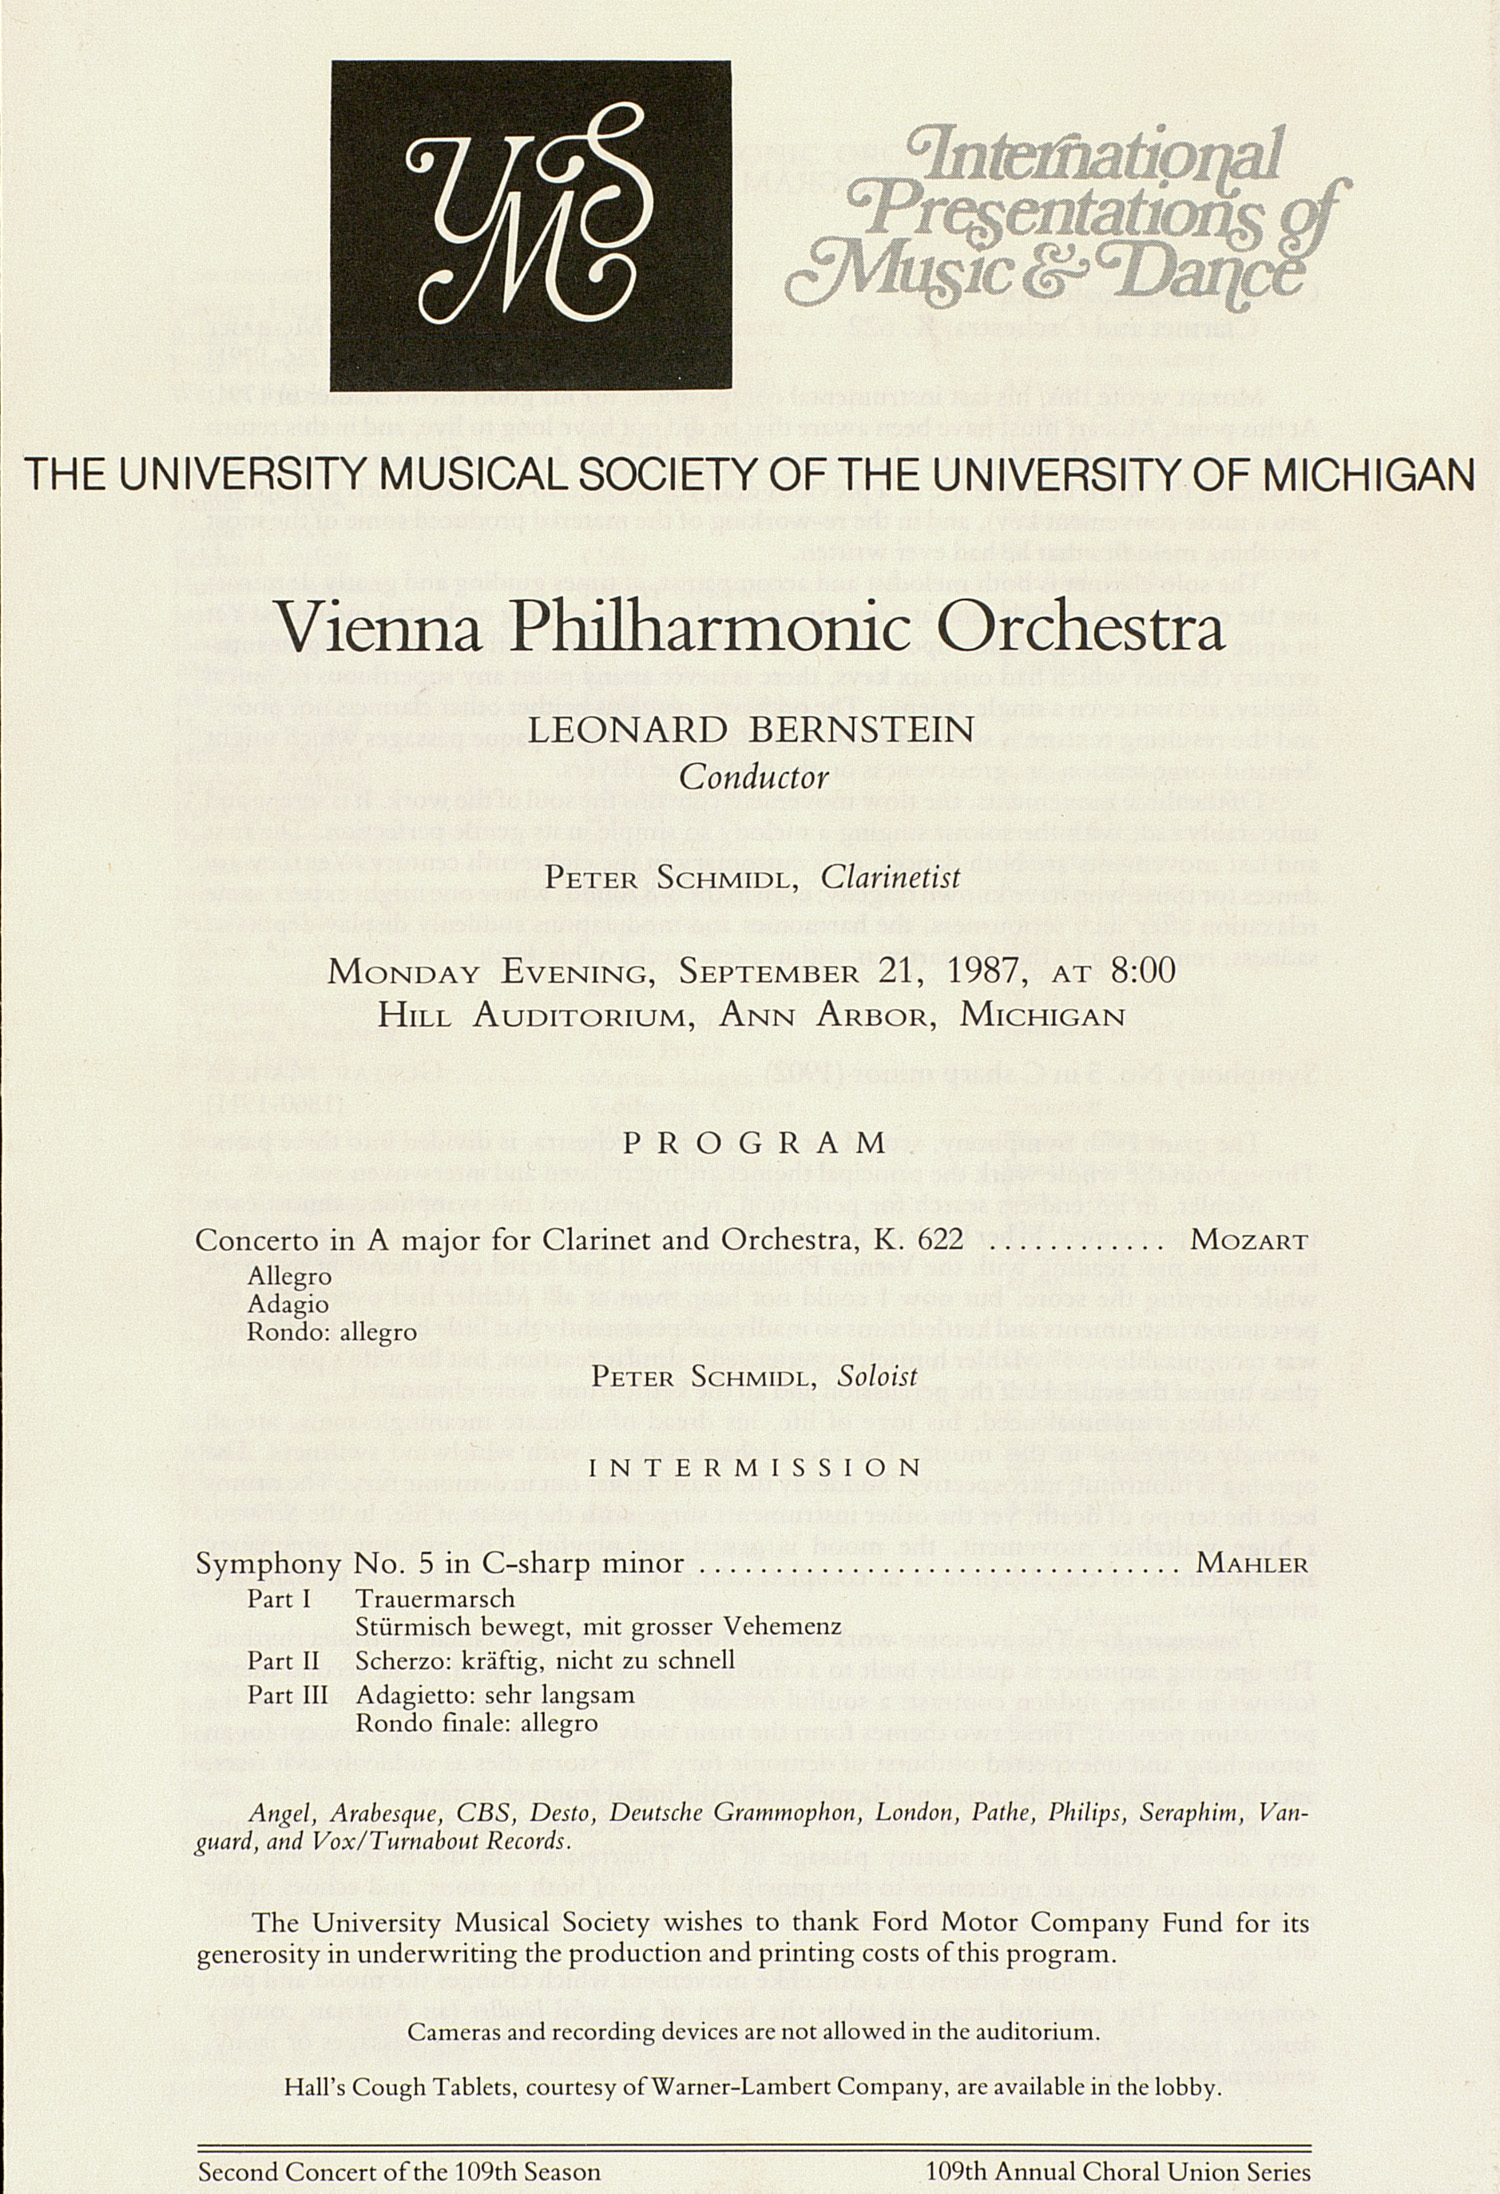 UMS Concert Program, September 21, 1987: International Presentations Of Music & Dance -- Vienna Philharmonic Orchestra image